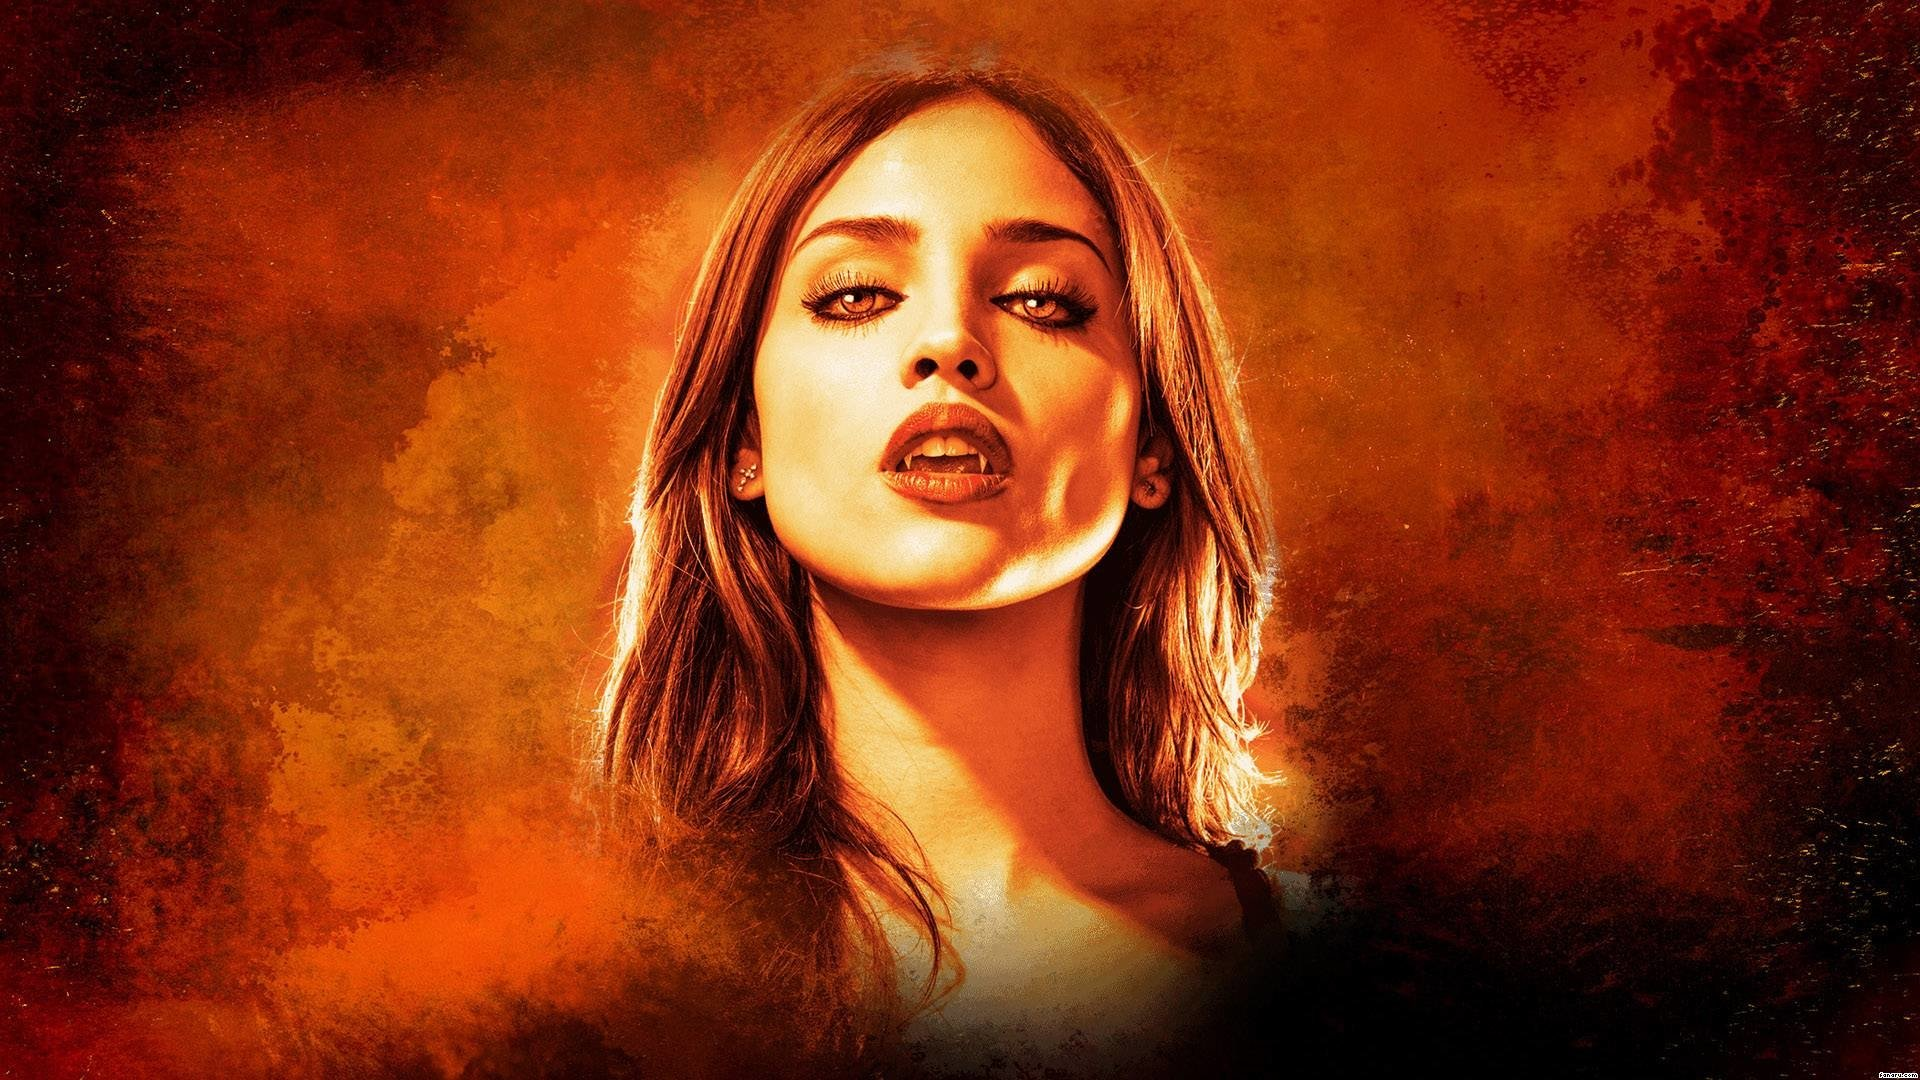 16 From Dusk Till Dawn The Series Hd Wallpapers Background